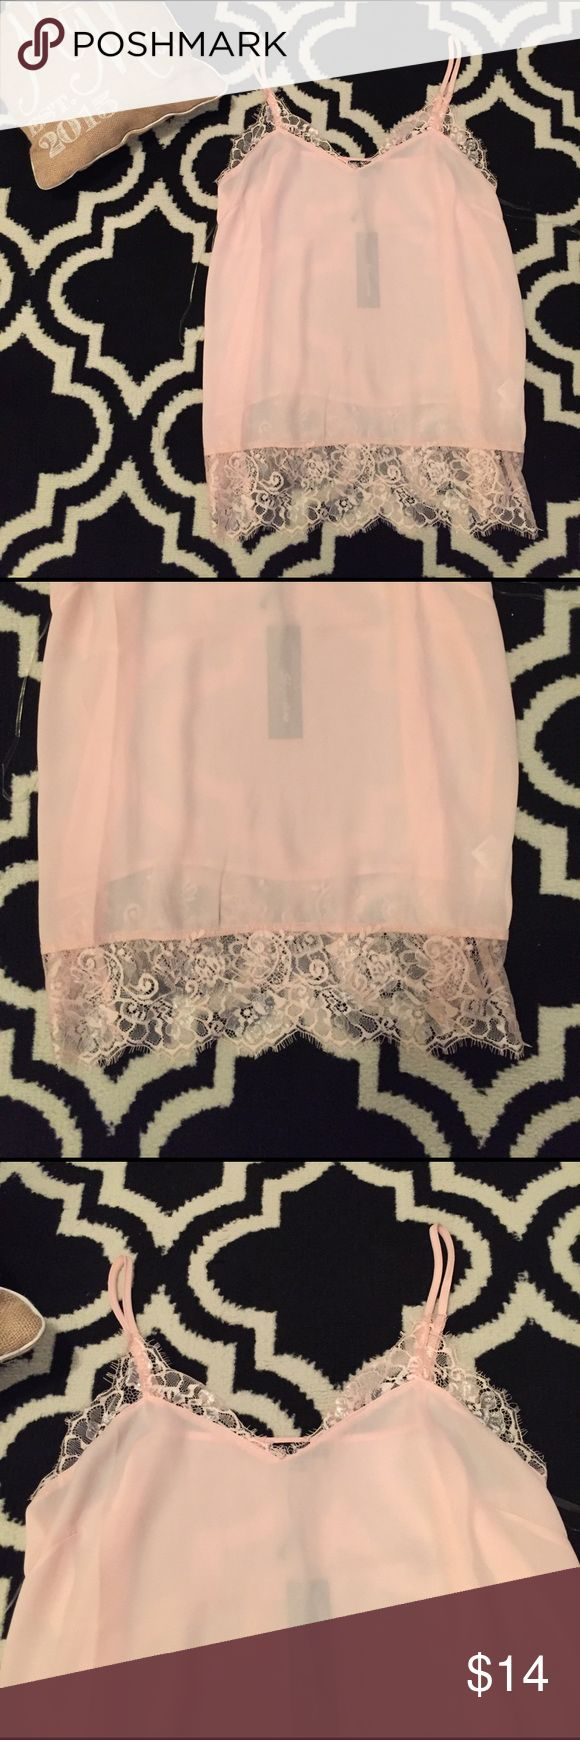 NEW 🎉 Shinestar Blush Lace Cami Top Size Medium New with tags! Size medium! Sheer blouse top. Perfect under a leather jacket or paired with white denim. shinestar Tops Camisoles